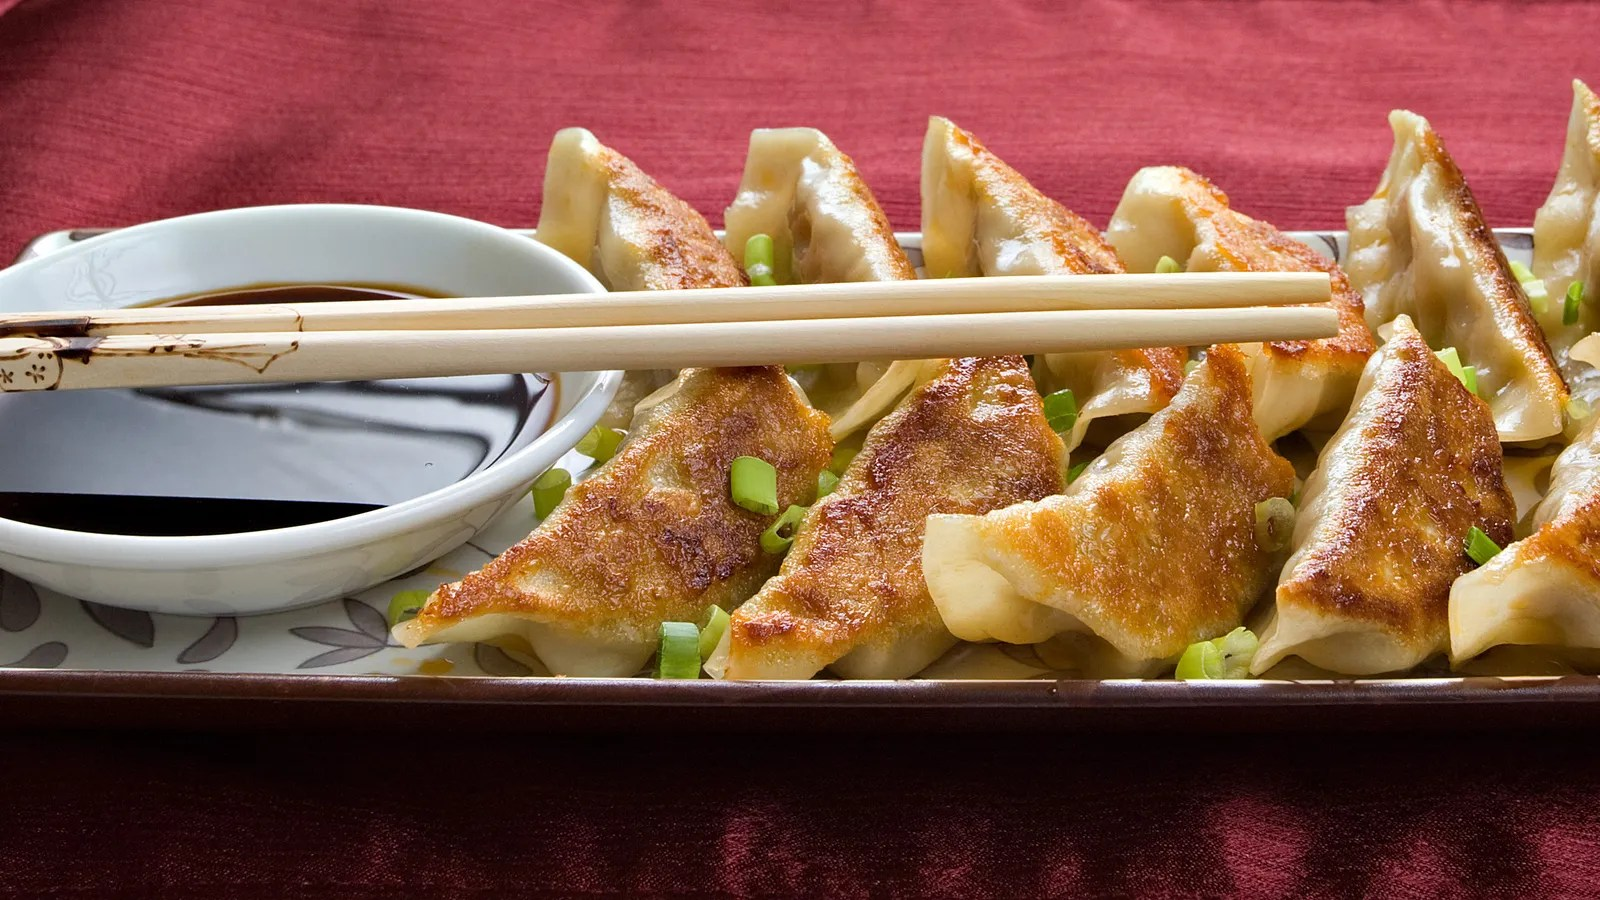 kitchen inventory app rustic table sets the difference between potstickers, wontons, and gyoza